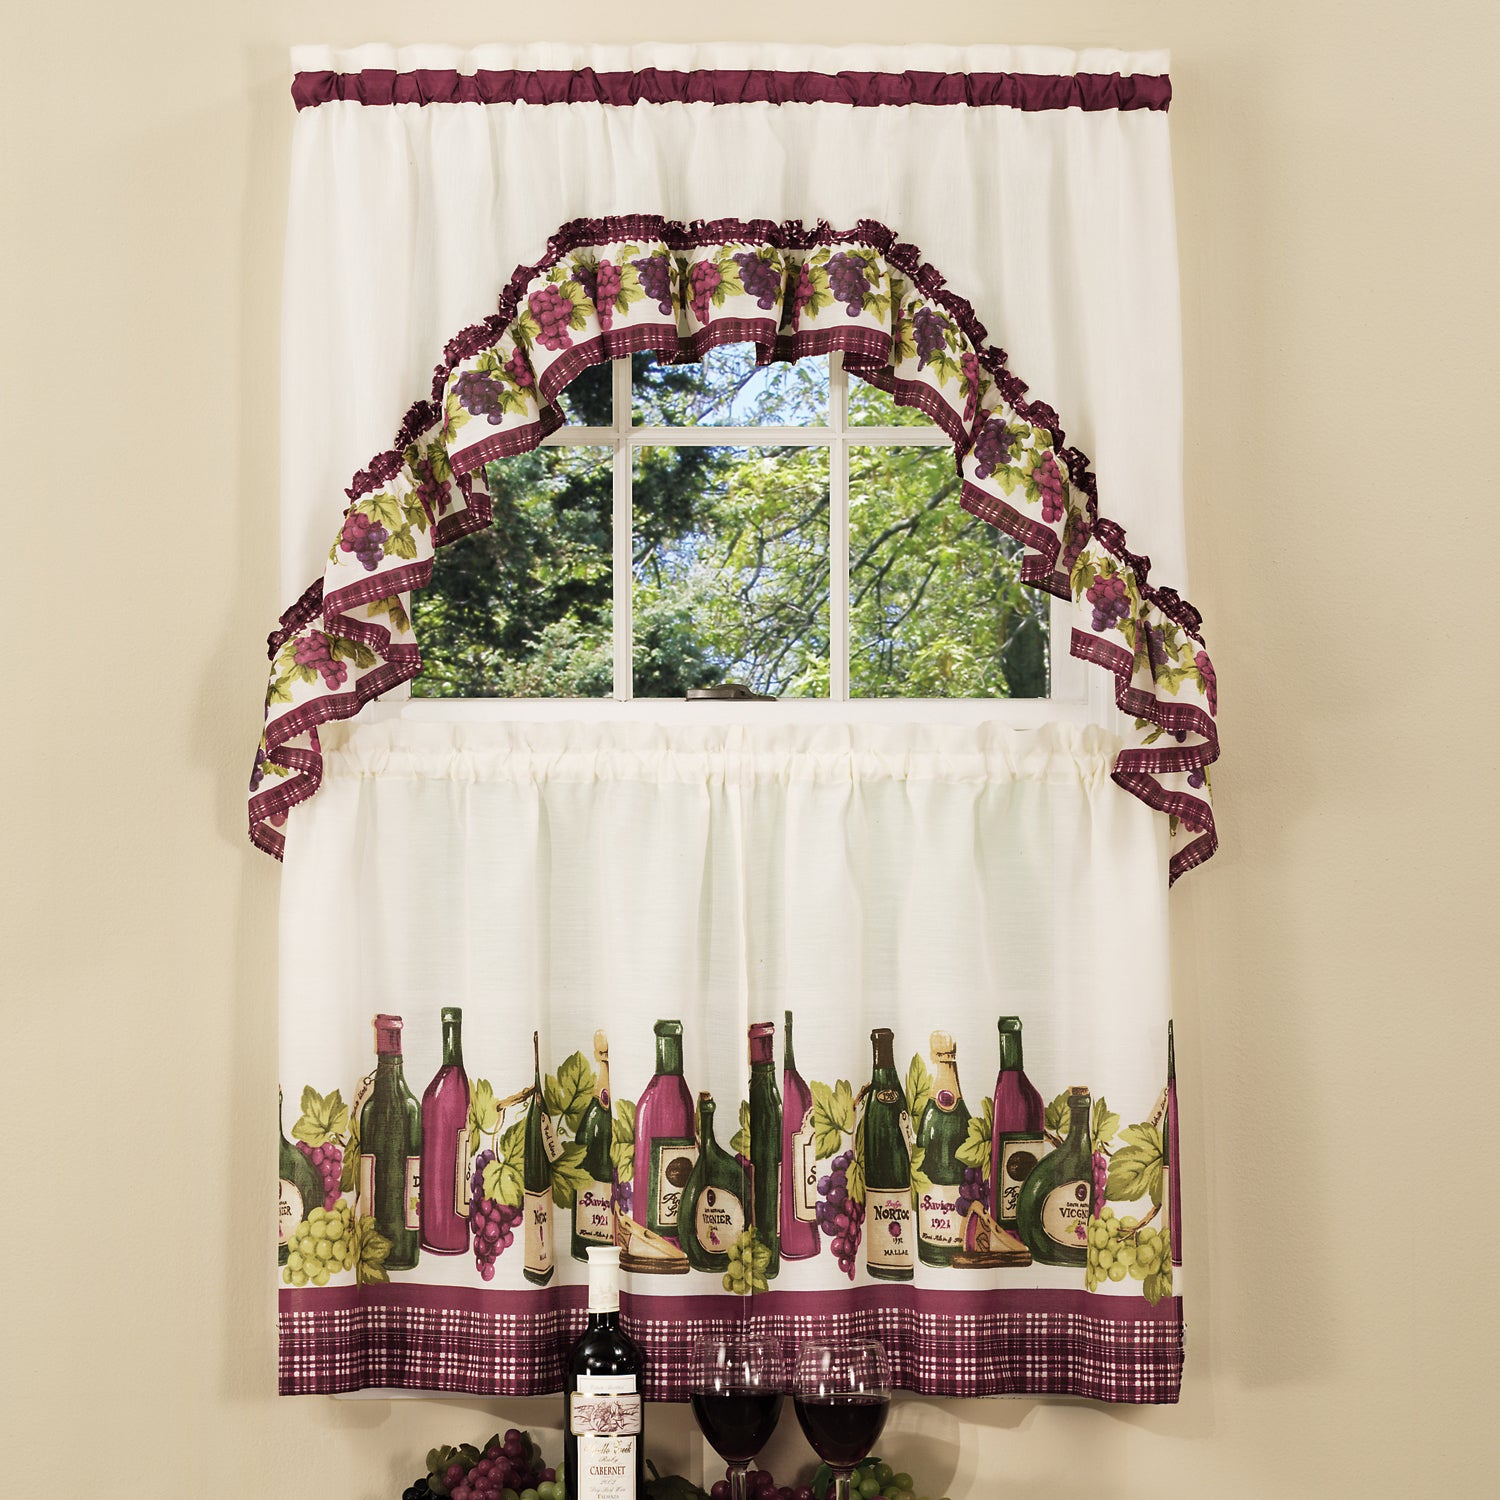 Traditional Two Piece Tailored Tier And Swag Window Curtains Set With Classic French Wine And Grapes Print – 36 Inch Throughout Chateau Wines Cottage Kitchen Curtain Tier And Valance Sets (View 19 of 20)